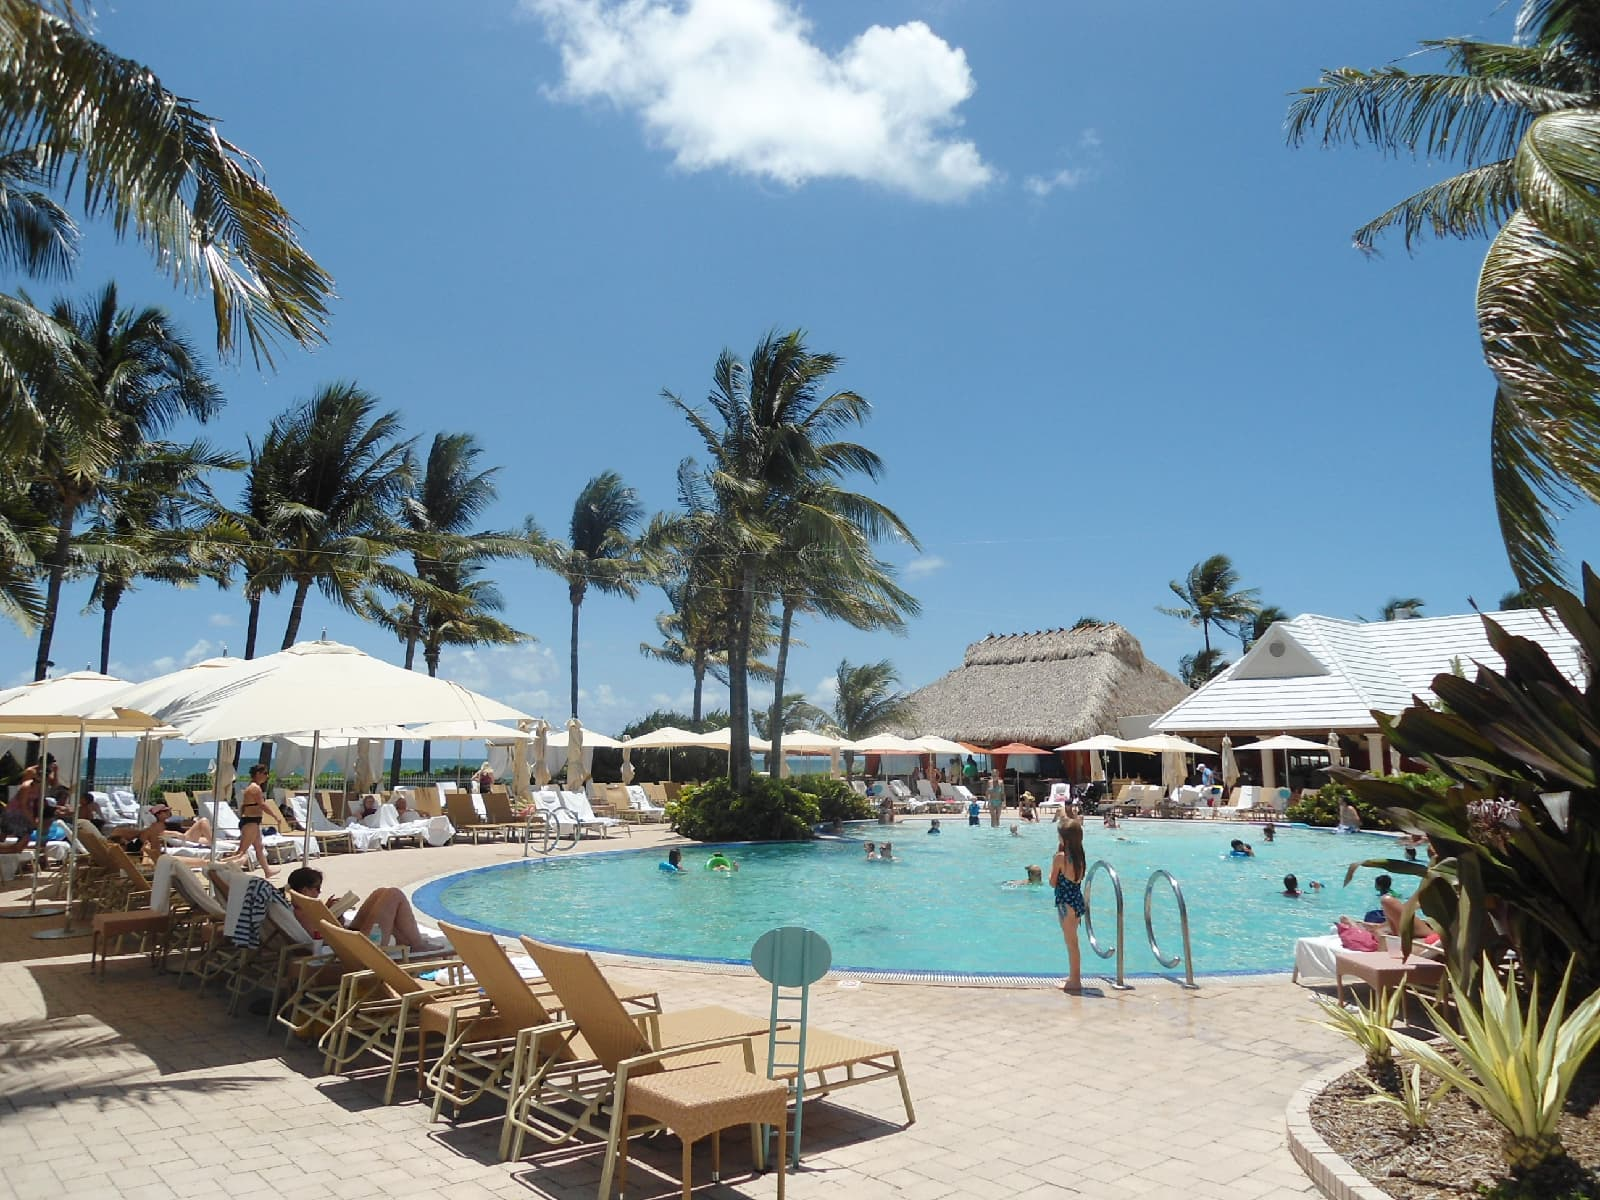 Ritz-Carlton Key Biscayne - one of the best tennis resorts for your tennis holidays in Florida